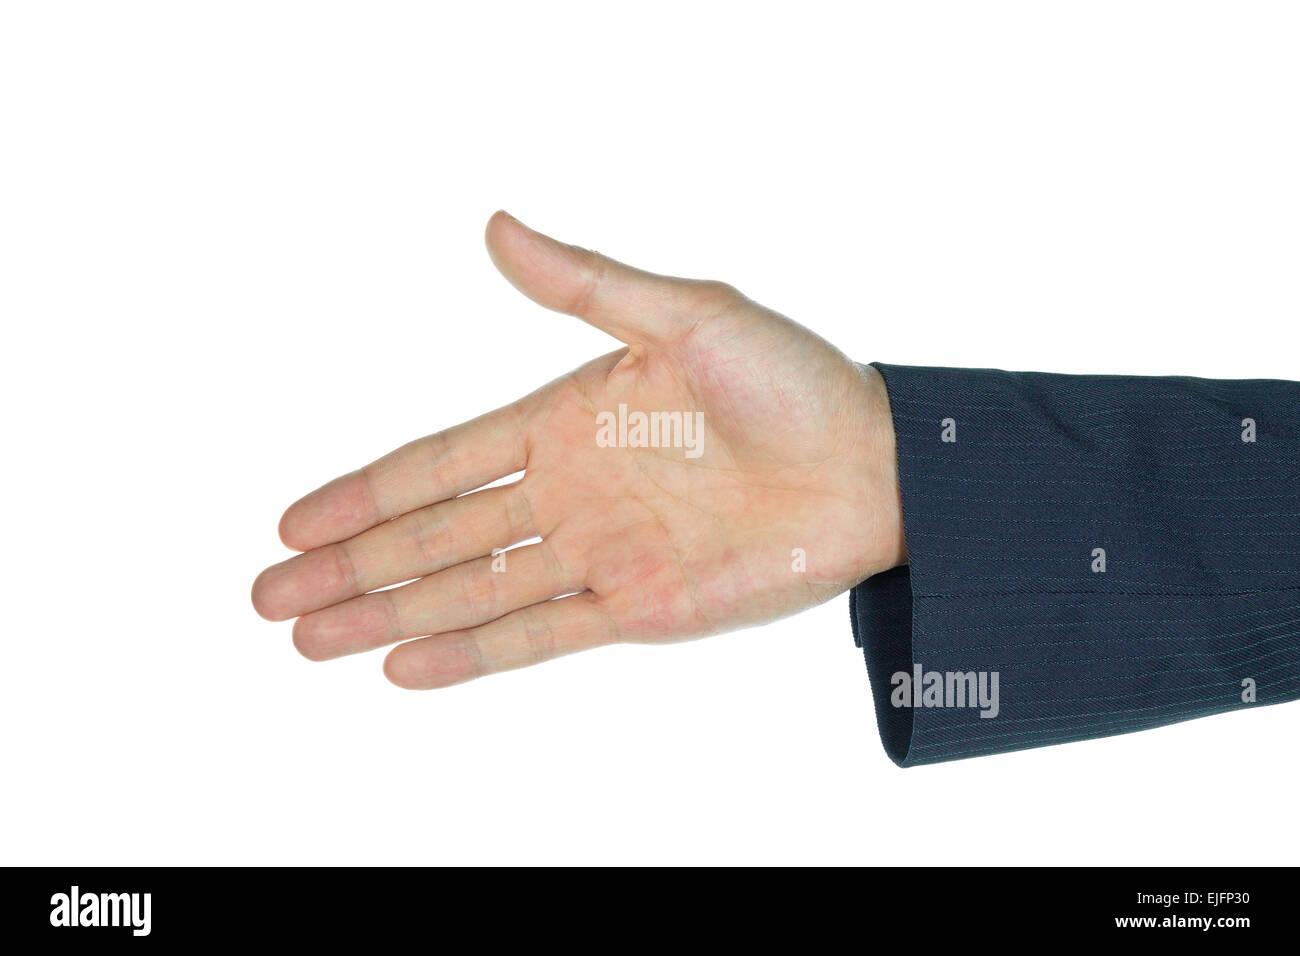 One handshake or palm of businessman on white background. Concept about cooperation in business subject. - Stock Image